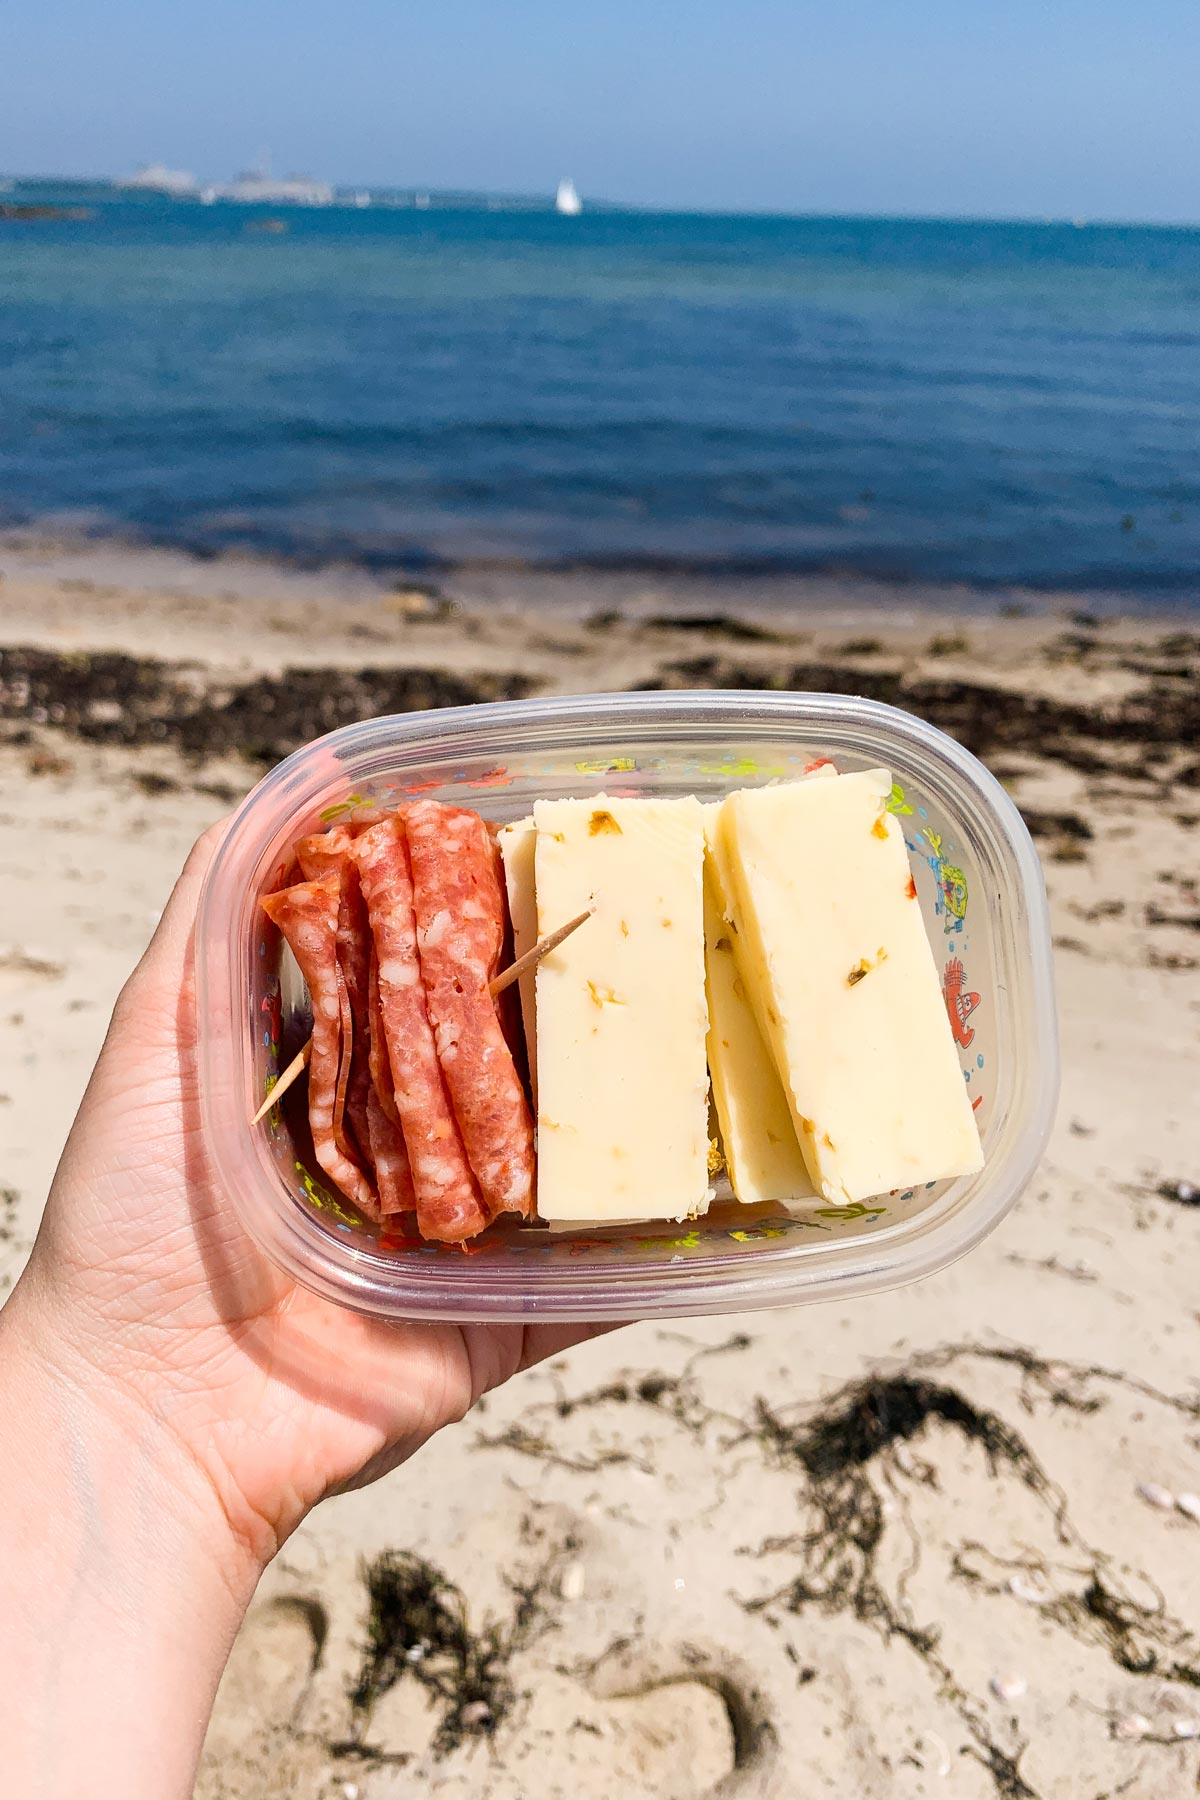 slices of salami and cheese in a container on the beach